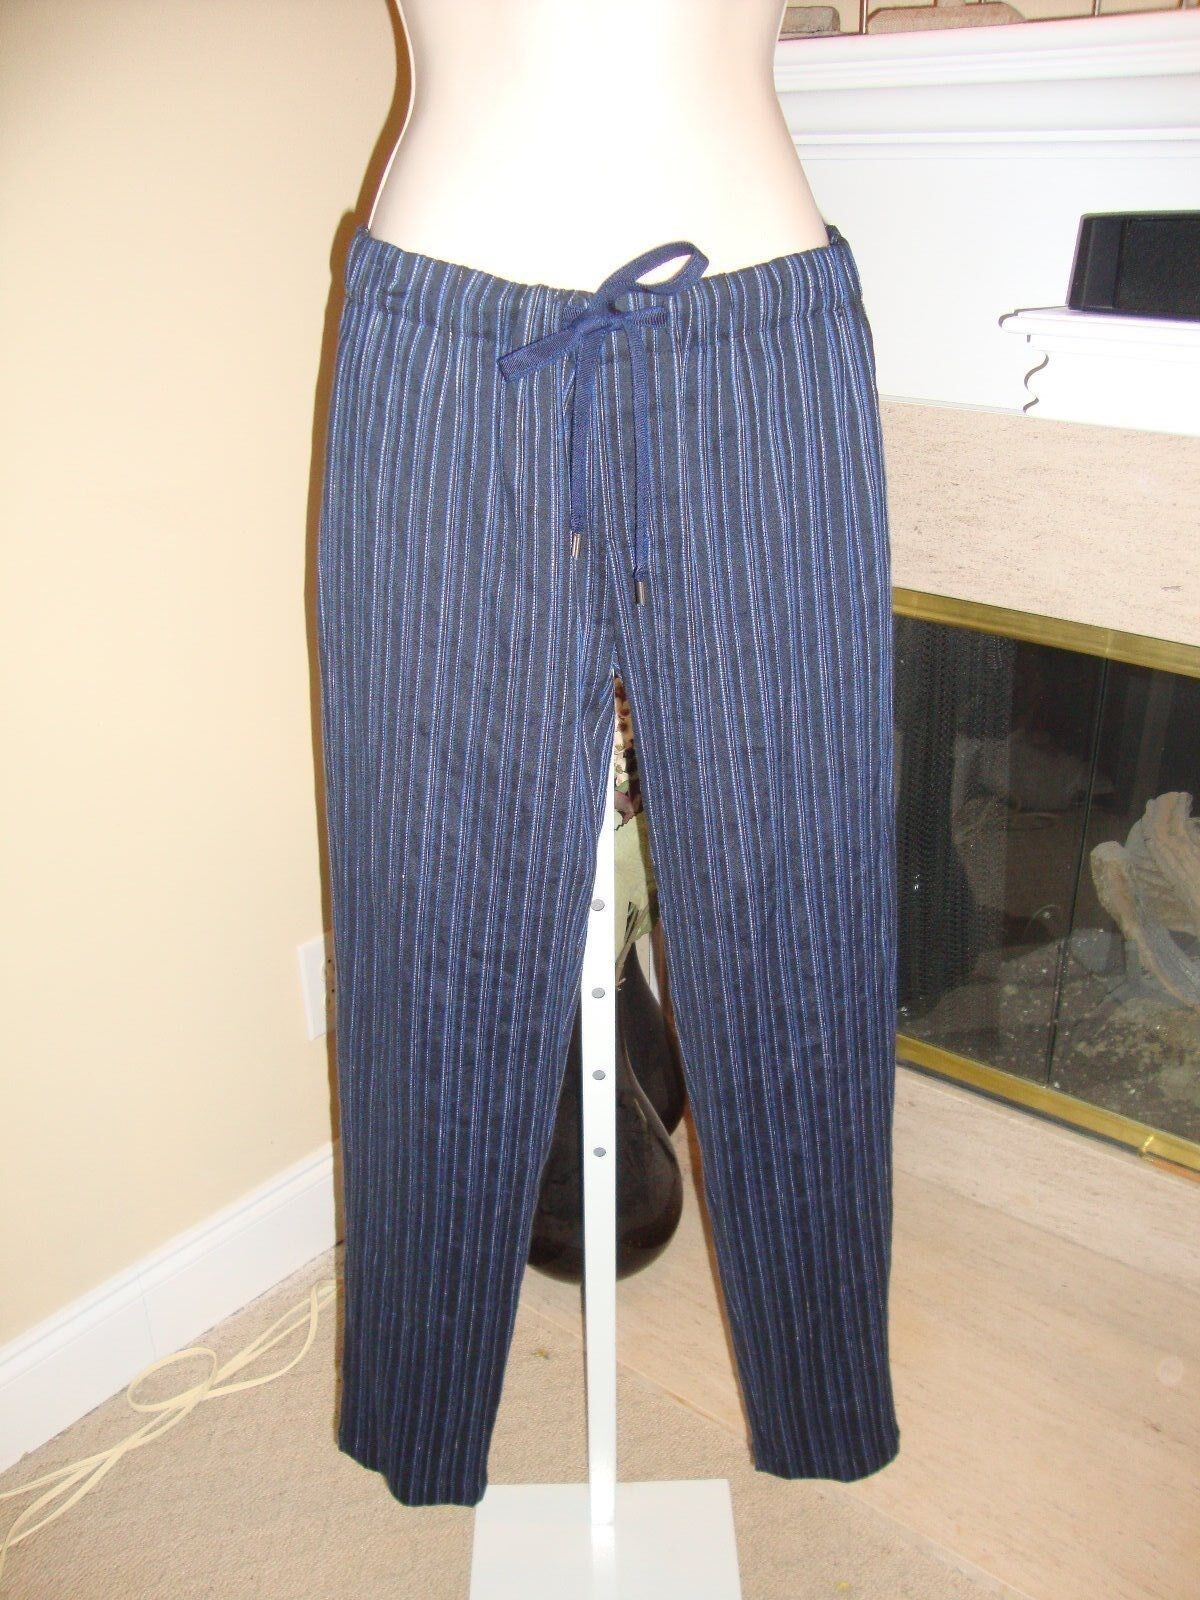 STYLISH NEW STRIPED DRAWSTRING PANTS BY VINCE (NWT)